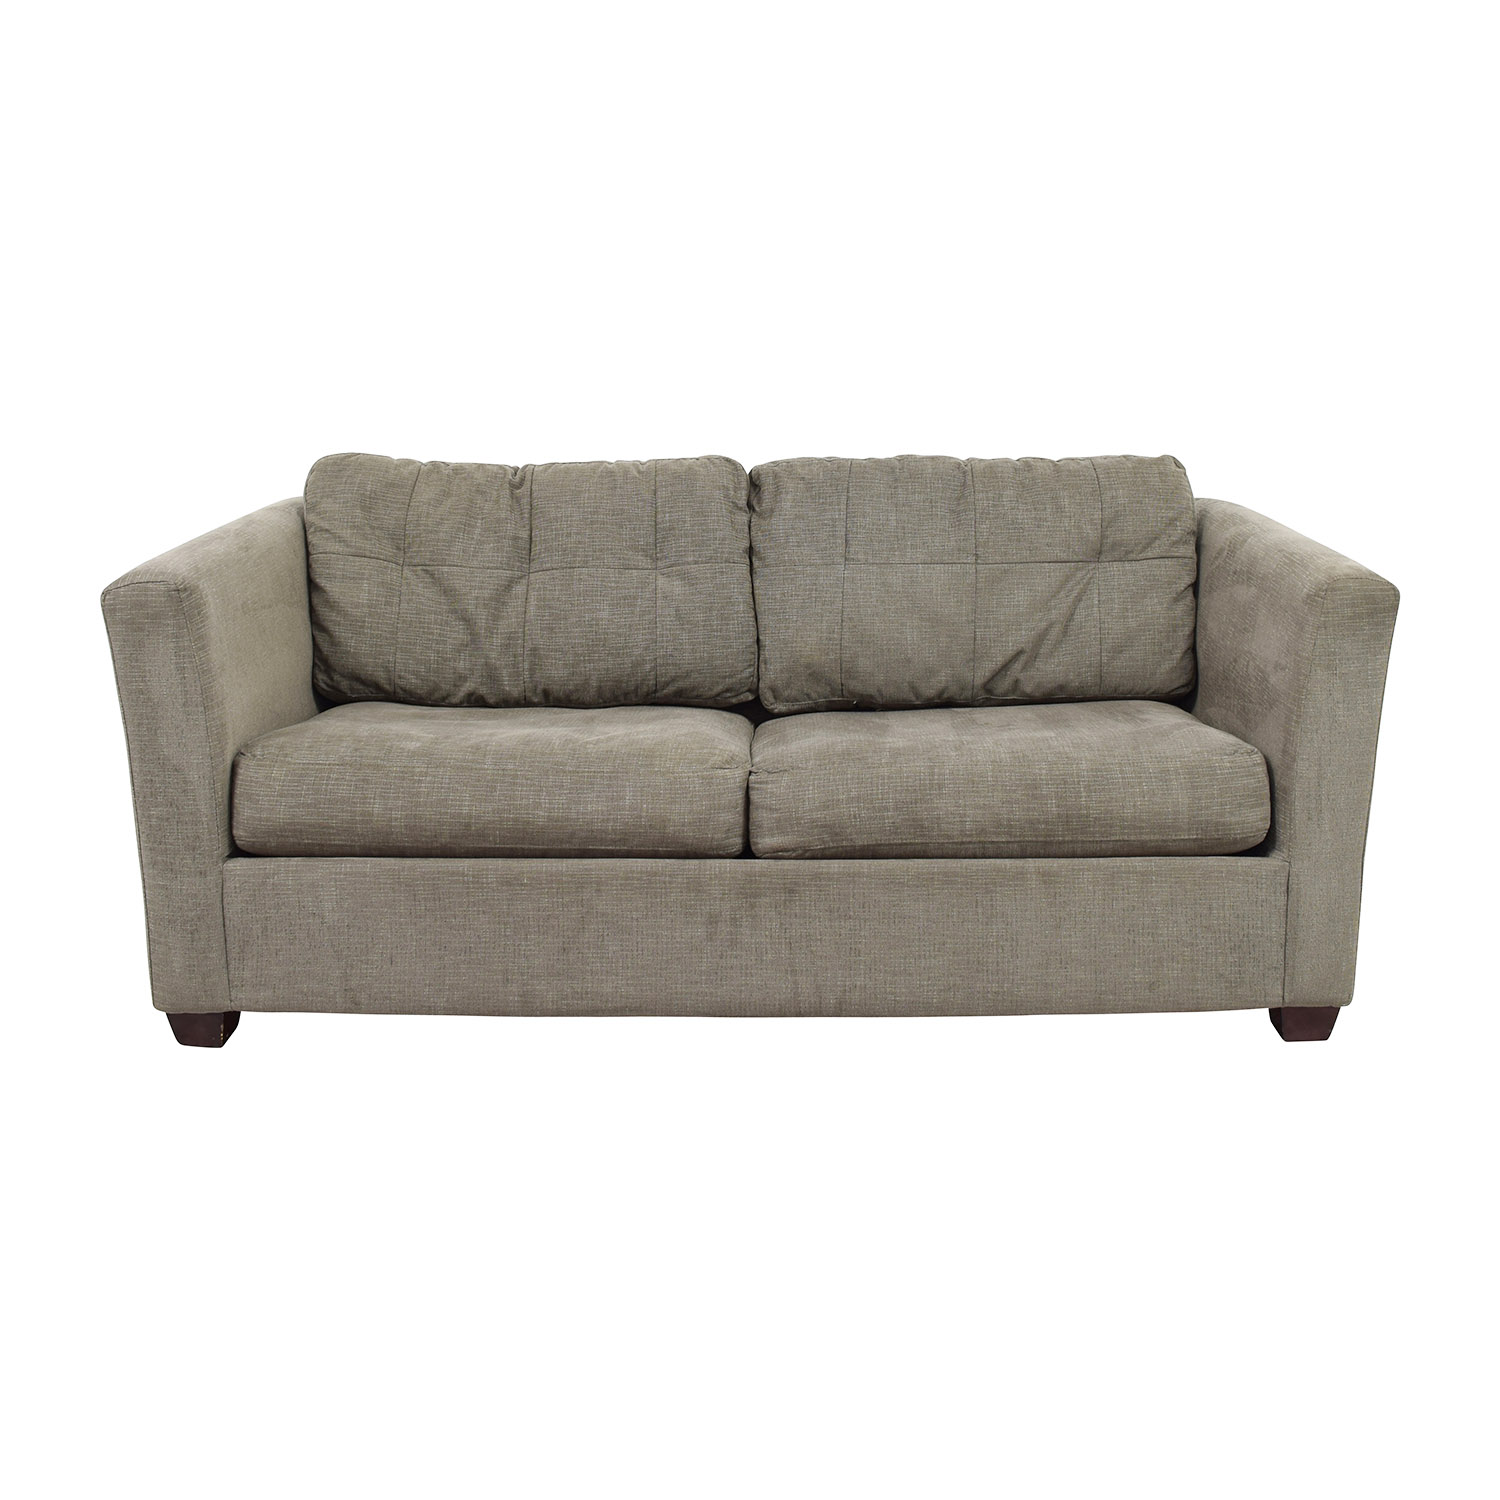 Bauhaus furniture sleeper sofa wwwenergywardennet for Bauhaus sectional sleeper sofa